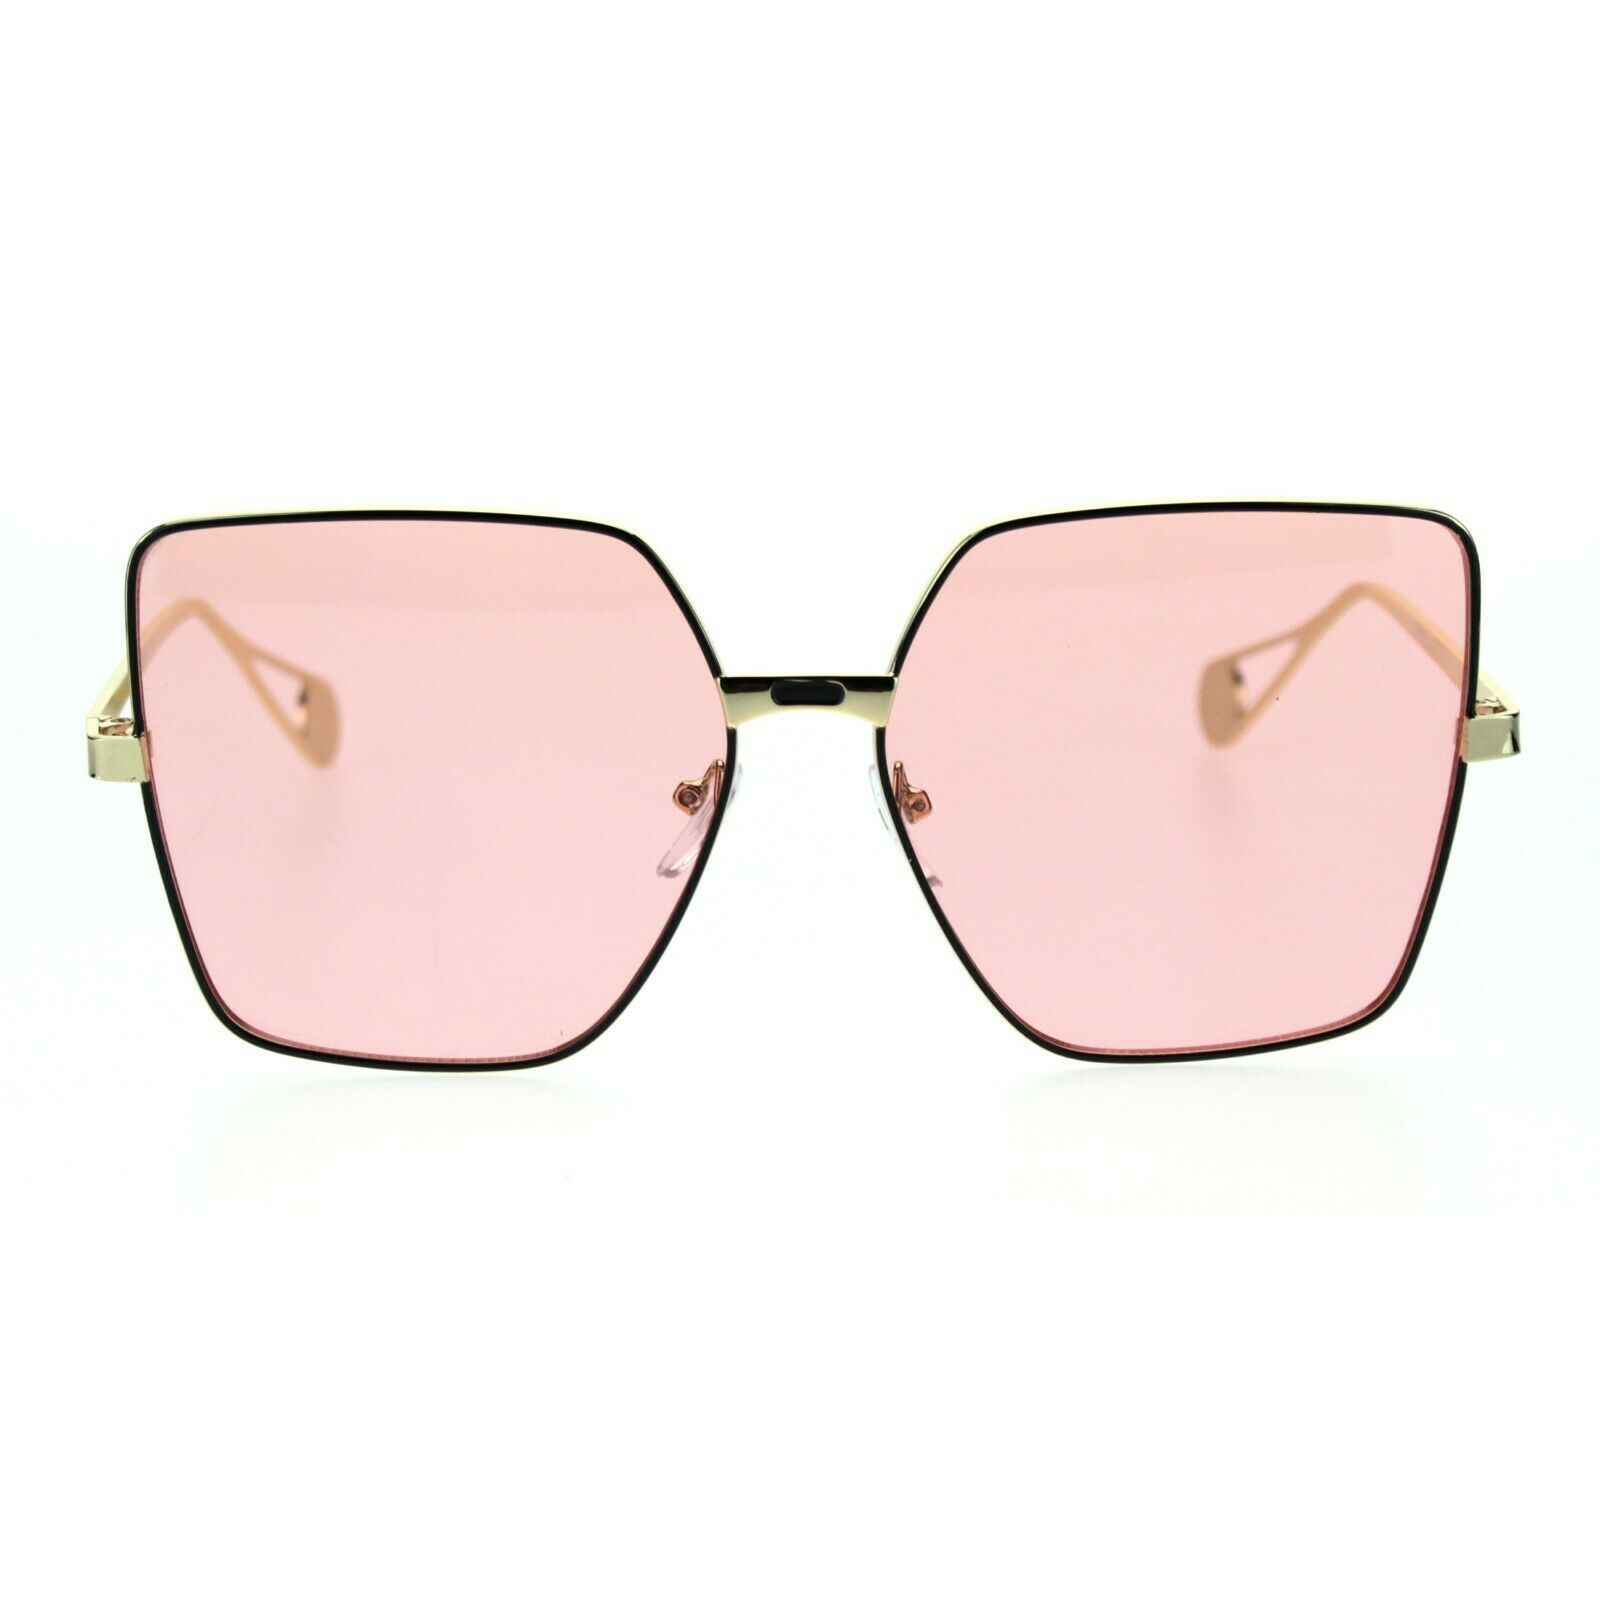 Womens Metal Rim Squared Rectangular Butterfly Sunglasses